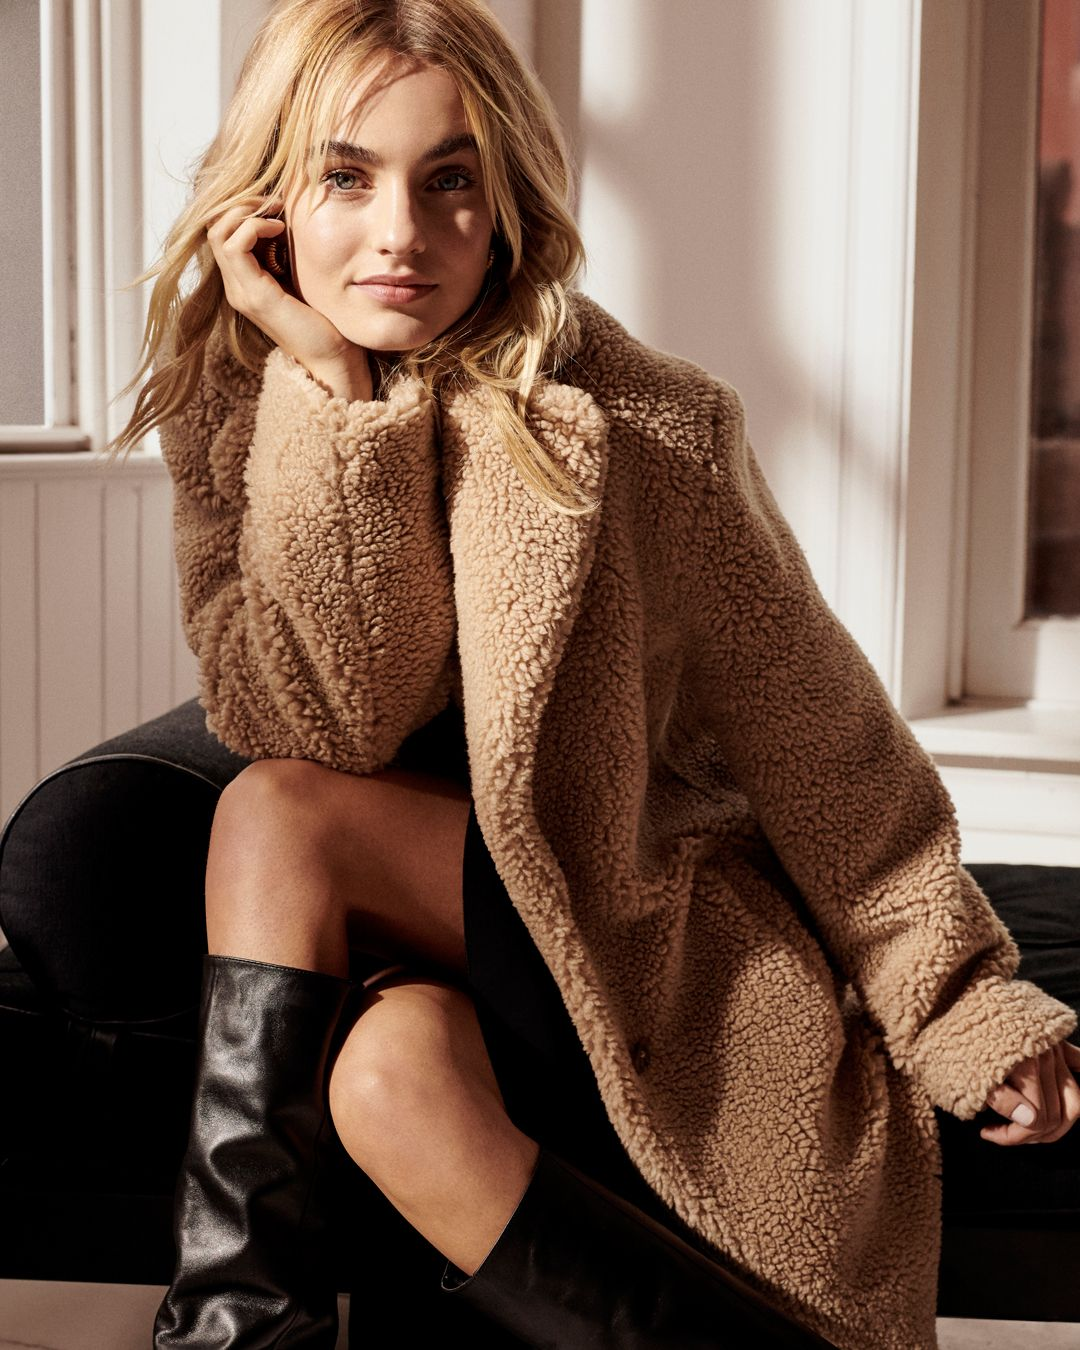 655ee5bd0035 The teddy cocoon in 2019 | Fall/ Winter vibes | Winter coat, Best ...